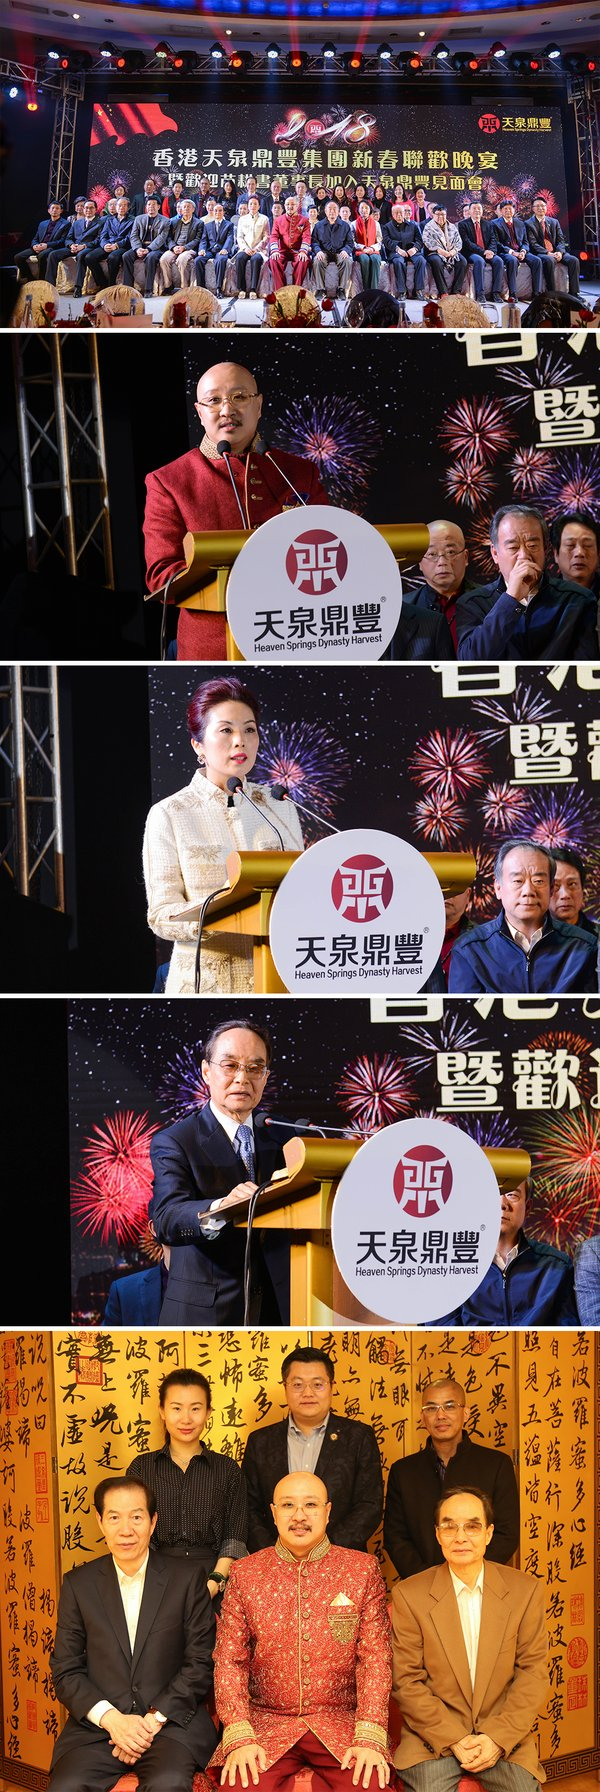 Photos of Dato' Sri Prof. Ng, Tat-yung, Datin Sri Dr. Ng, Tsz-yan Irys, Mr. Miao Gengshu, and Dr. Lo, Man-tuen